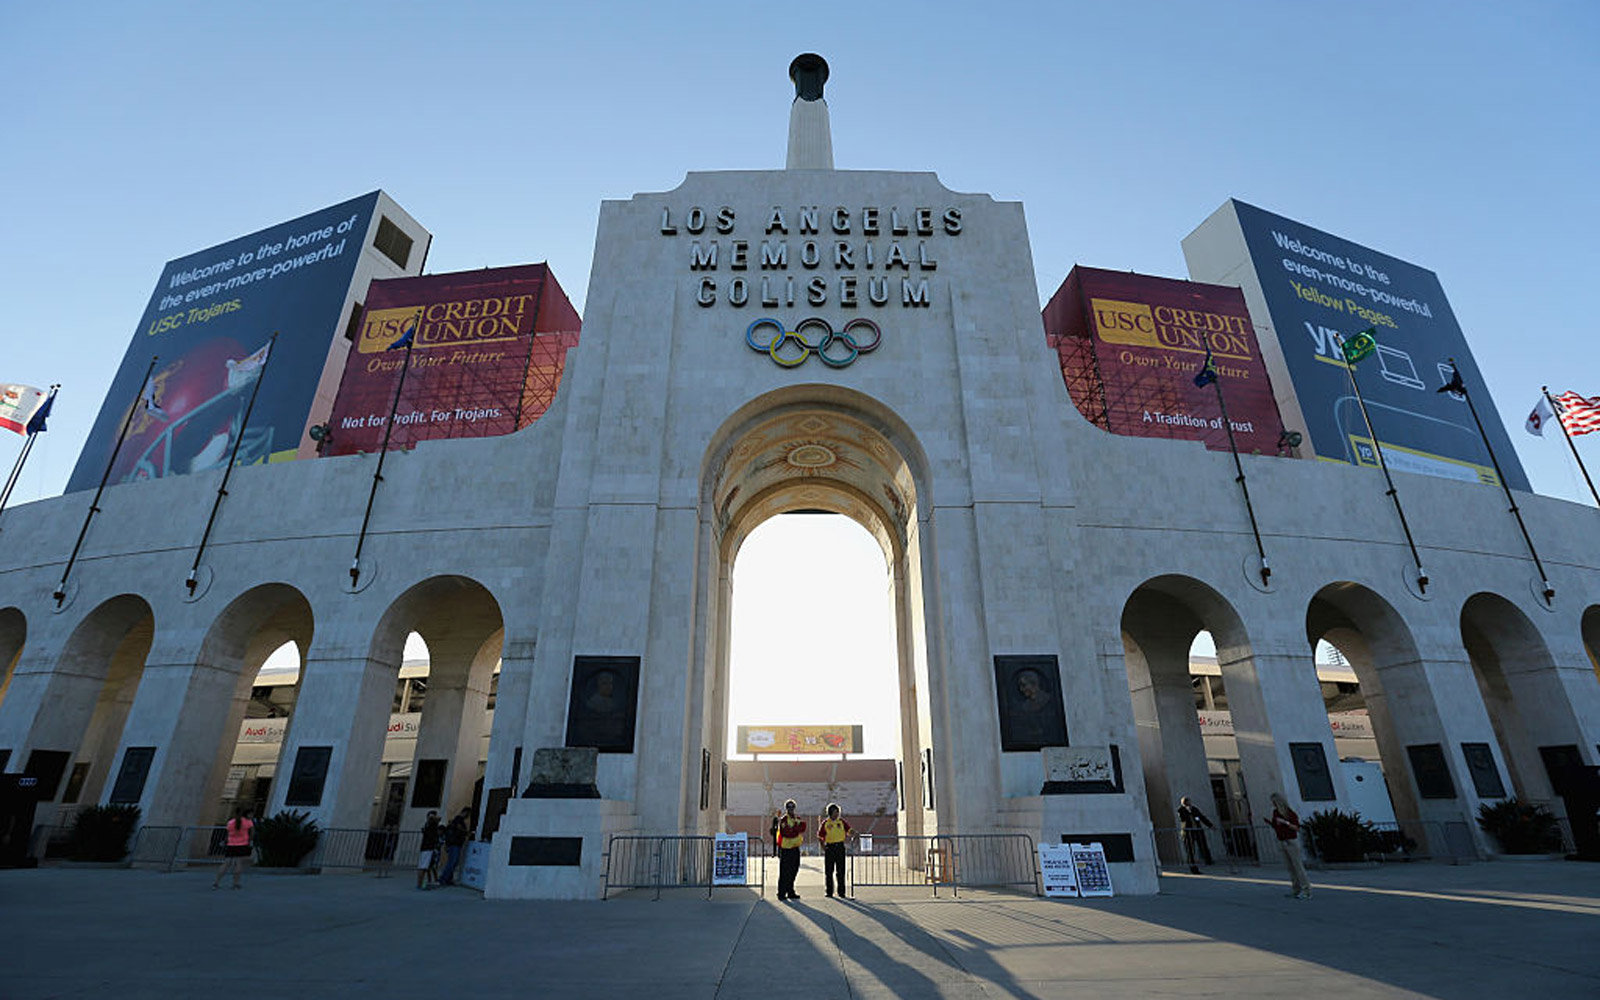 LOS ANGELES, CA - SEPTEMBER 27:  A general view of the exterior of Los Angeles Memorial Coliseum is seen prior to the start of the game between the Oregon State Beavers and the USC Trojans on September 27, 2014 in Los Angeles, California.  (Photo by Jeff